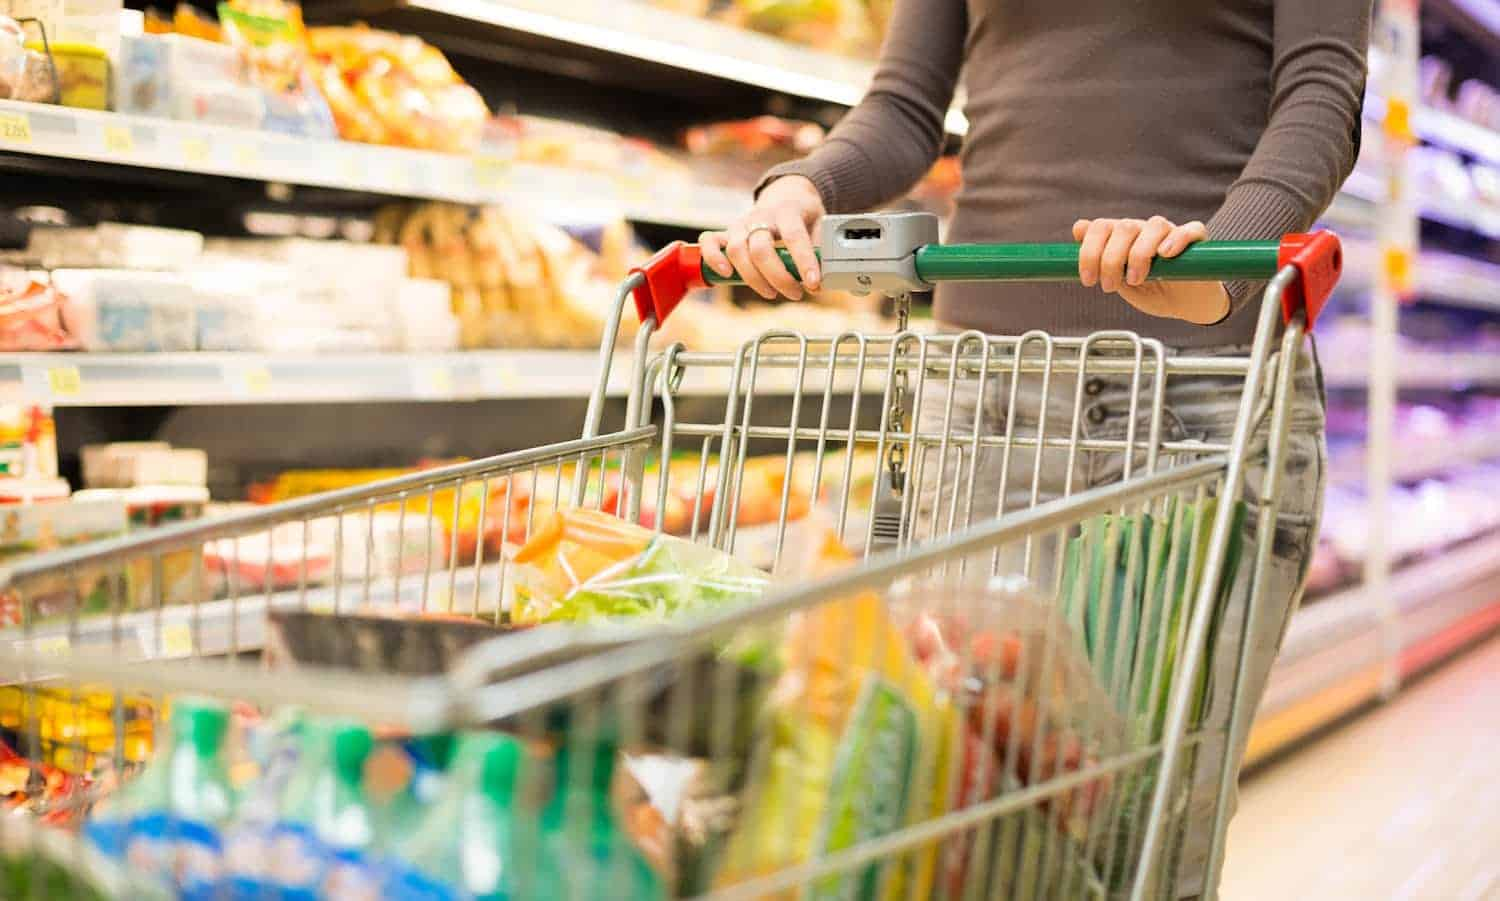 A new report suggests less than half of U.S. grocery companies commit to eliminating food waste, but other stores can catch up with crucial first steps.